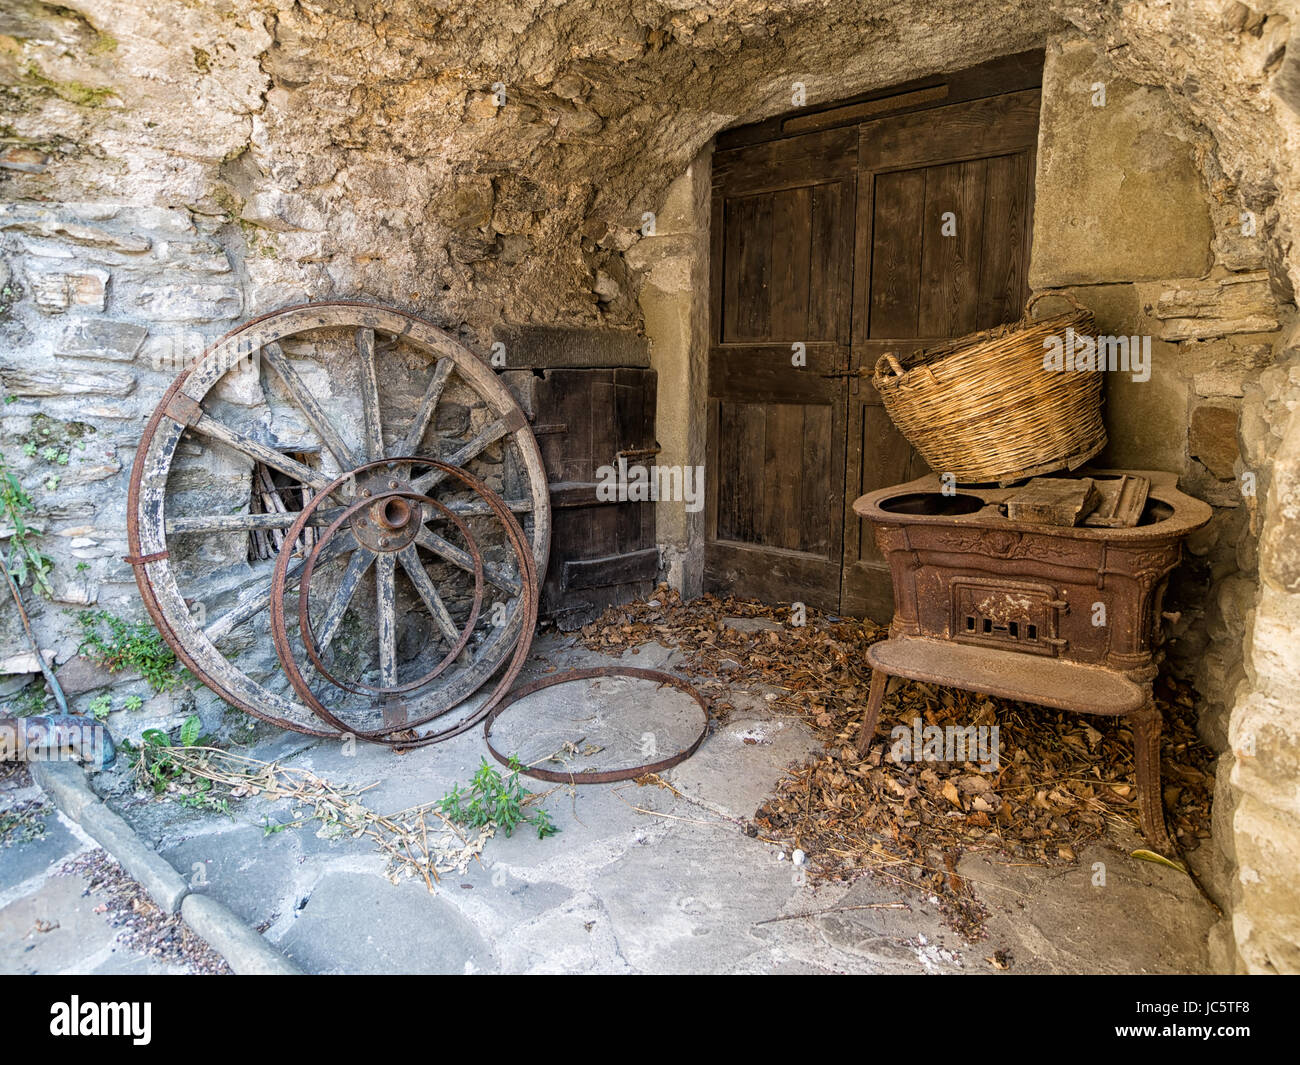 Rustic rural remains with crtwheels and old stove. Italian village. - Stock Image